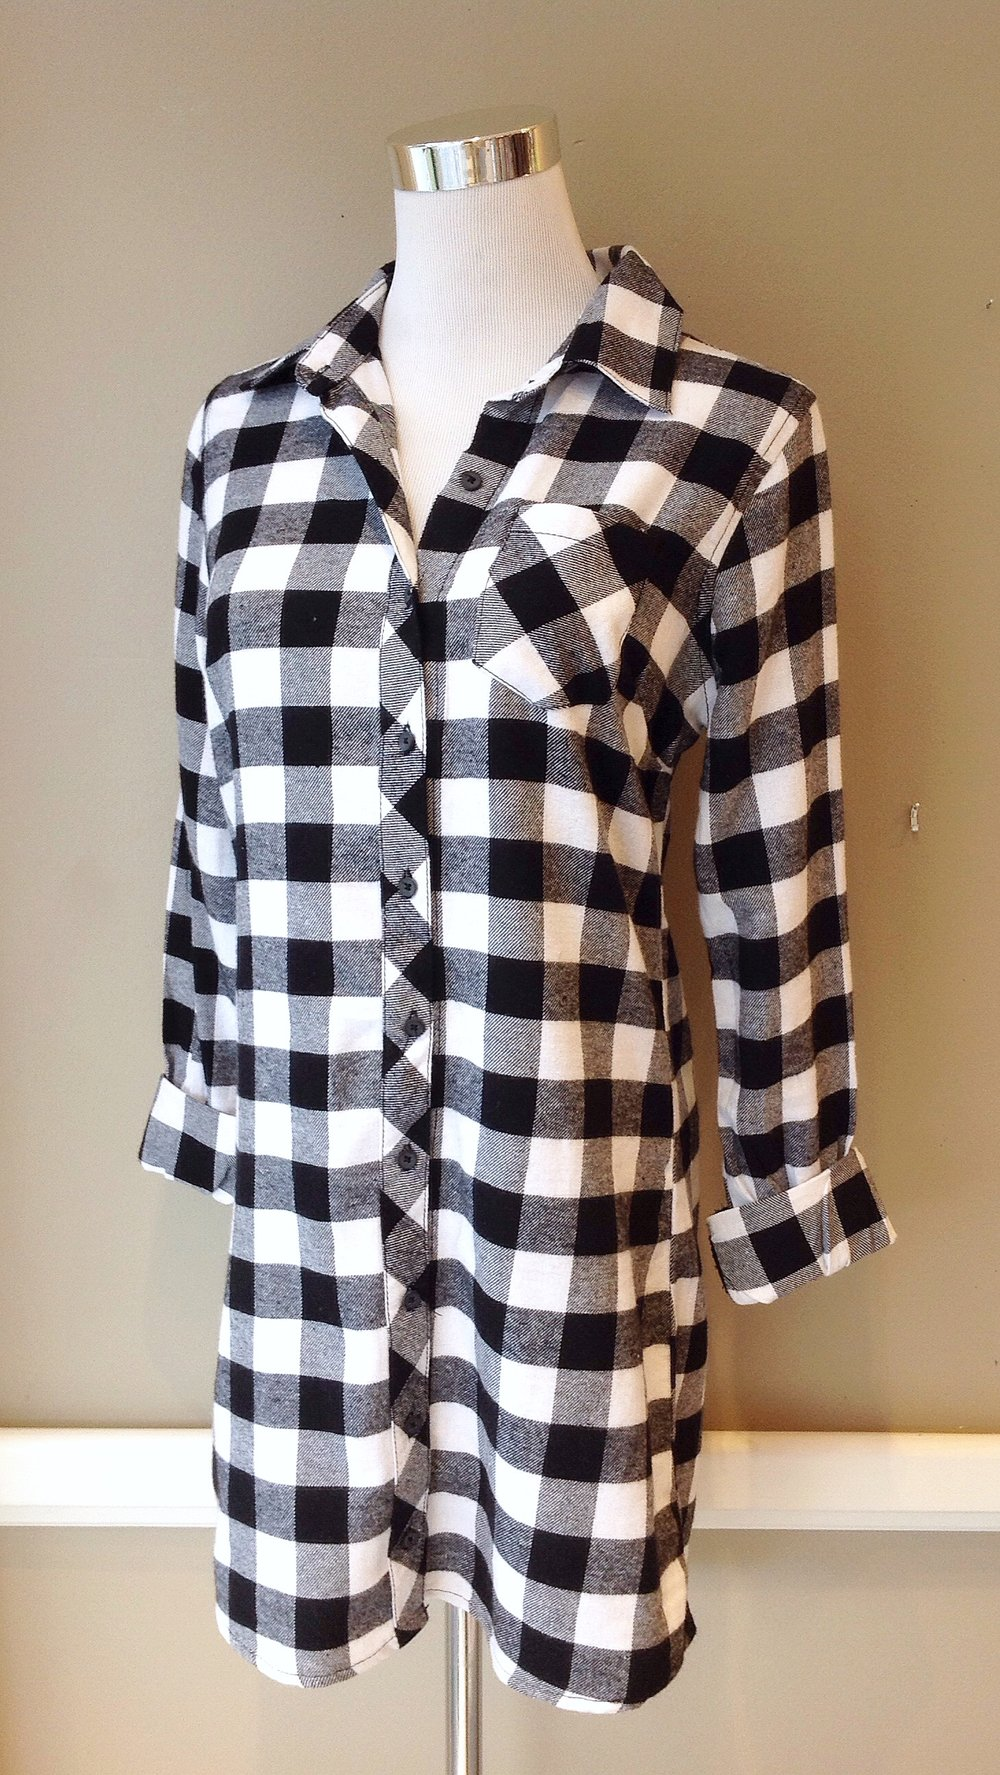 Black and white flannel shirt dress, $34